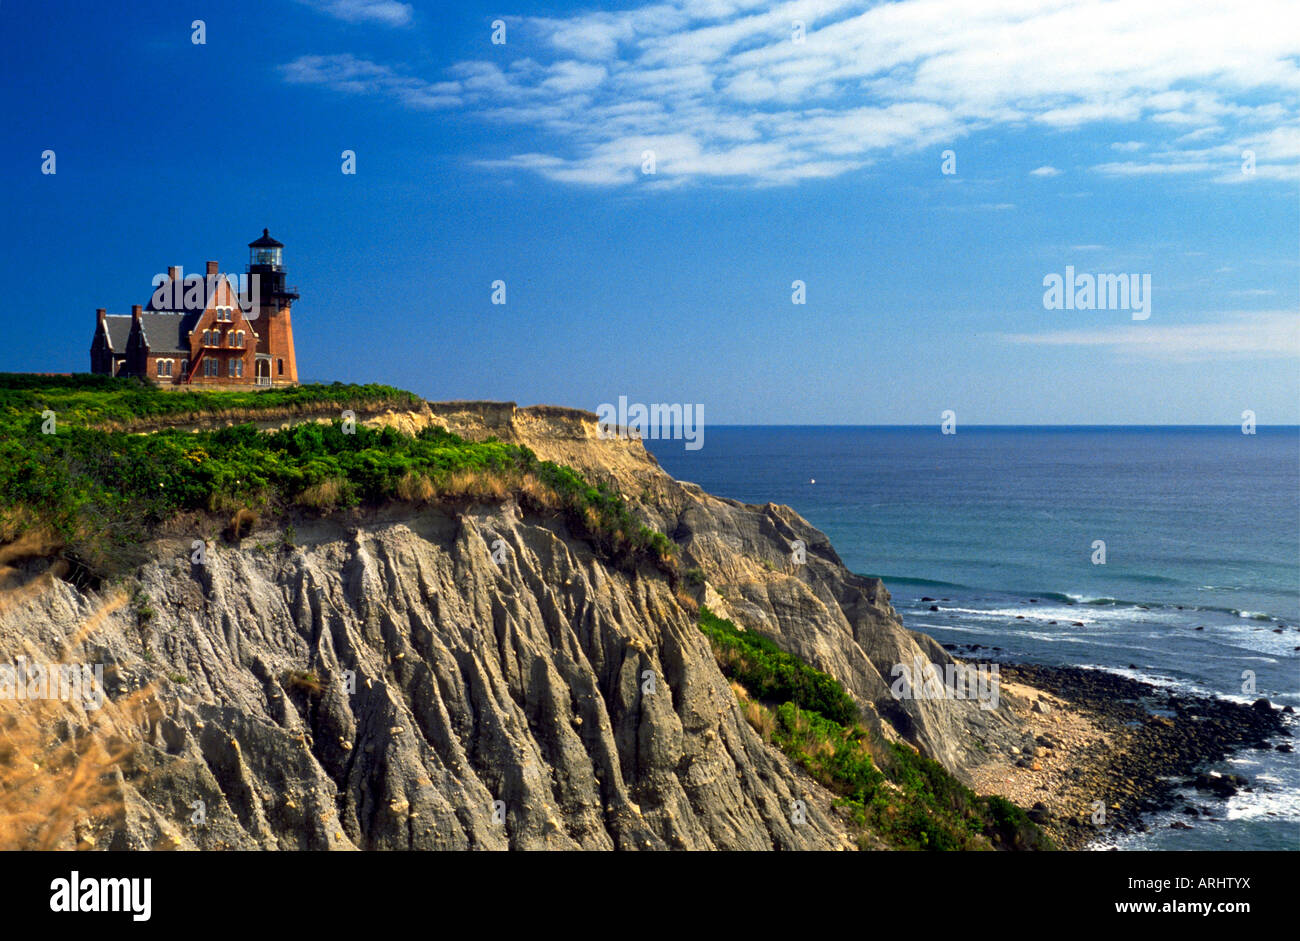 Scenic view of the cliffside Southeast Lighthouse, Block Island, Rhode Island, USA Stock Photo